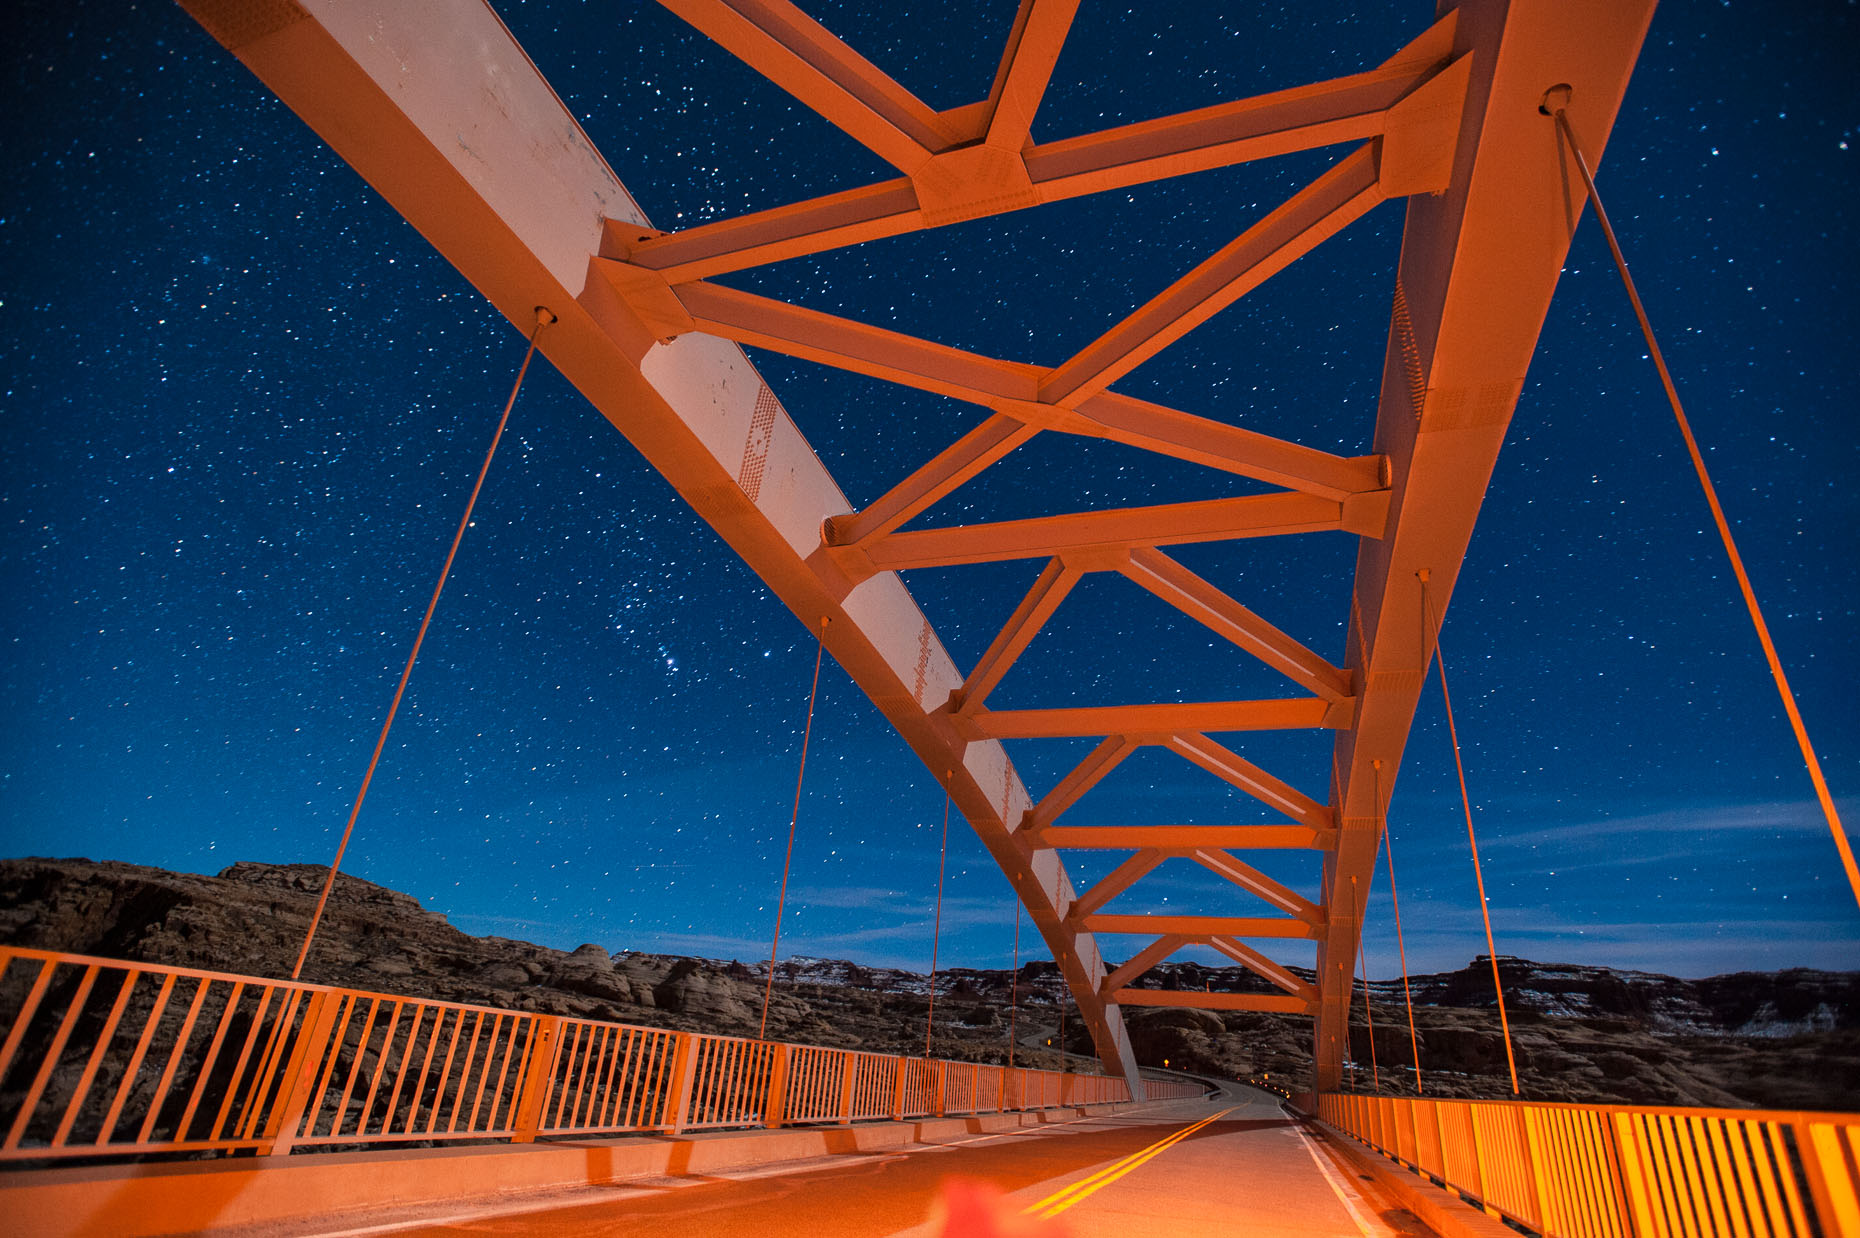 Image of bridge structure at night with star lit sky over Colorado River, Utah.